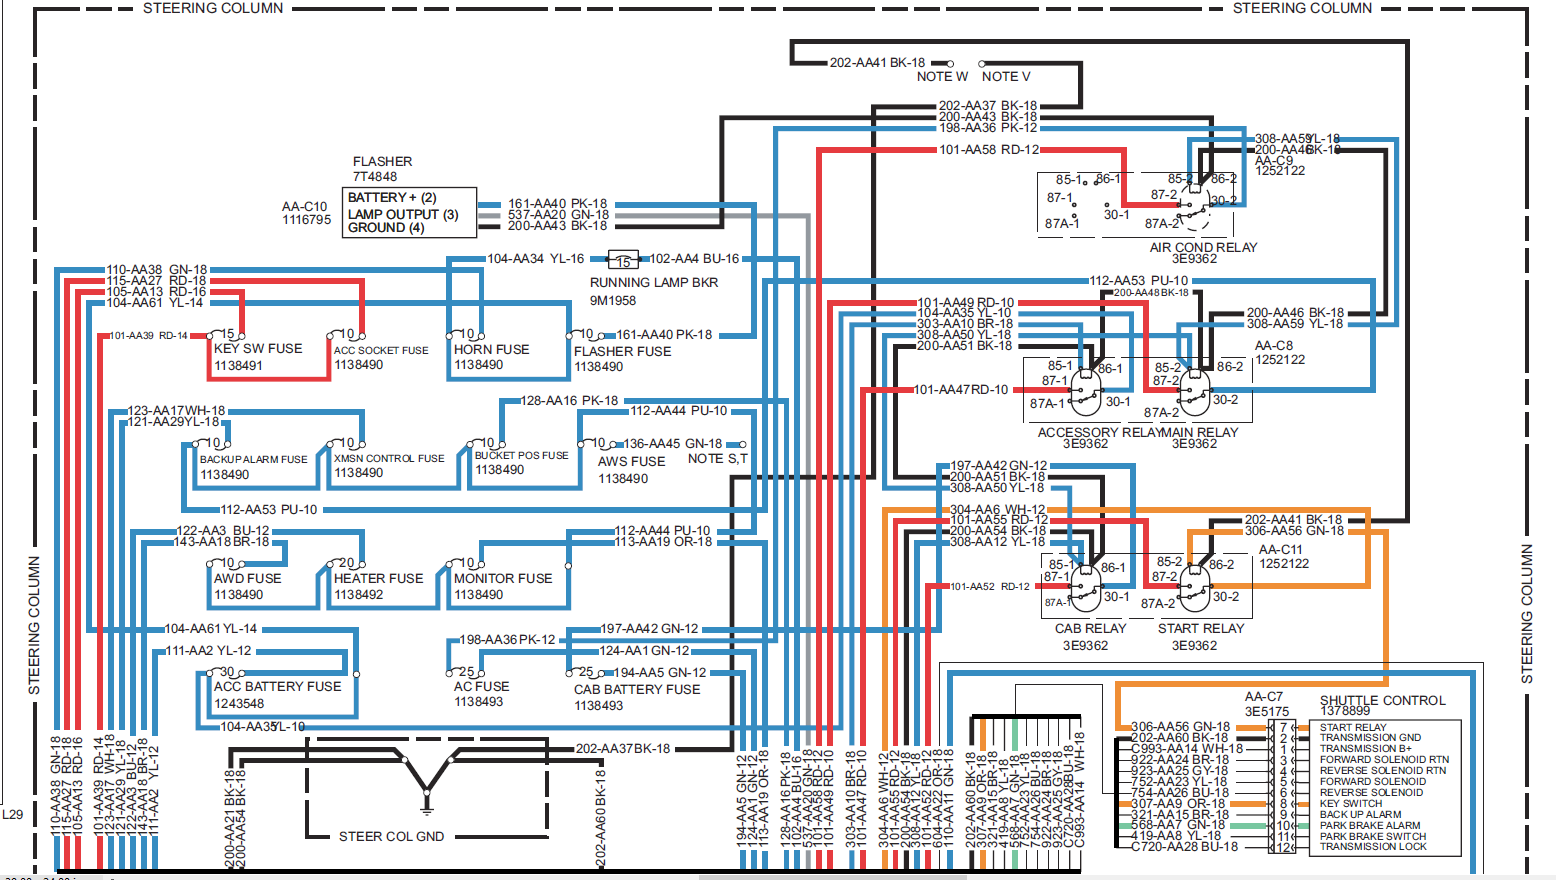 cat 420d wiring diagram cat 420d wiring diagram | wiring library cat 6 vs cat 5 wiring diagram